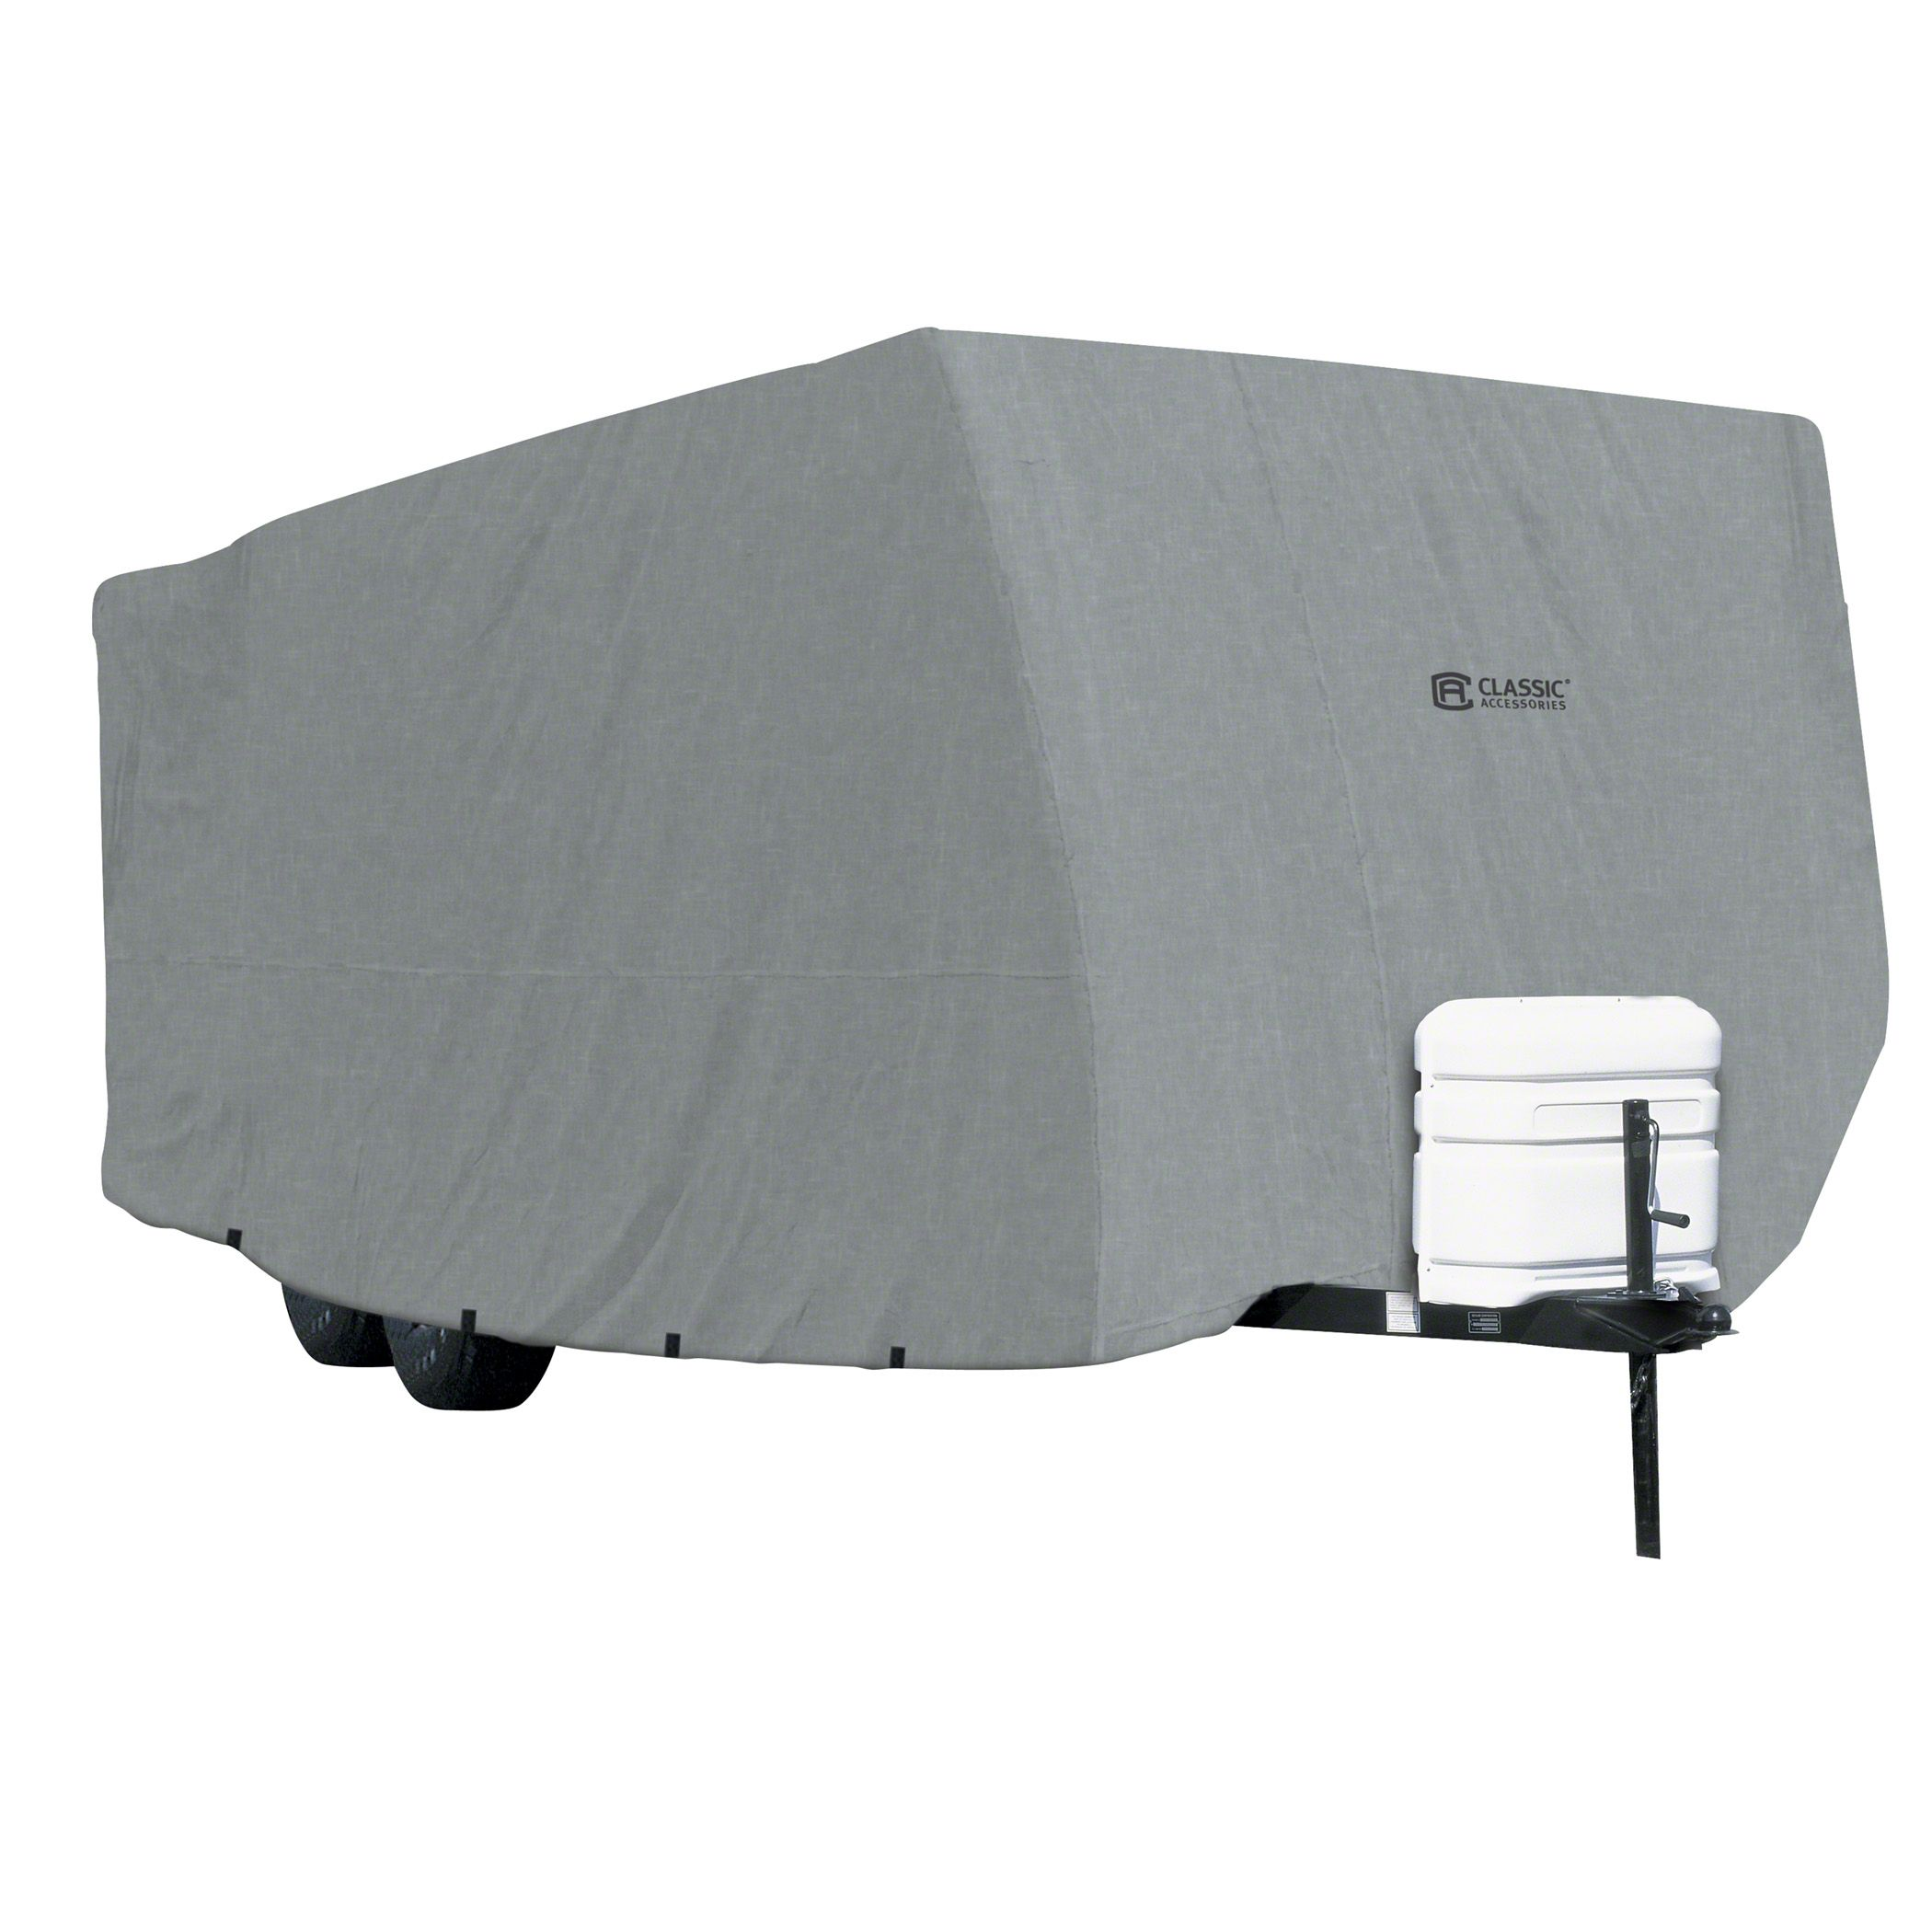 New And We Think The Best RV Cover Is The ADCO 52245 Designer Series SFS Aqua Shed Travel Trailer RV Cover Not Only Will The Cover Protect Your Vehicle For Years To Come, You Would Not Have To Spend Too Much Time In Cleaning Your